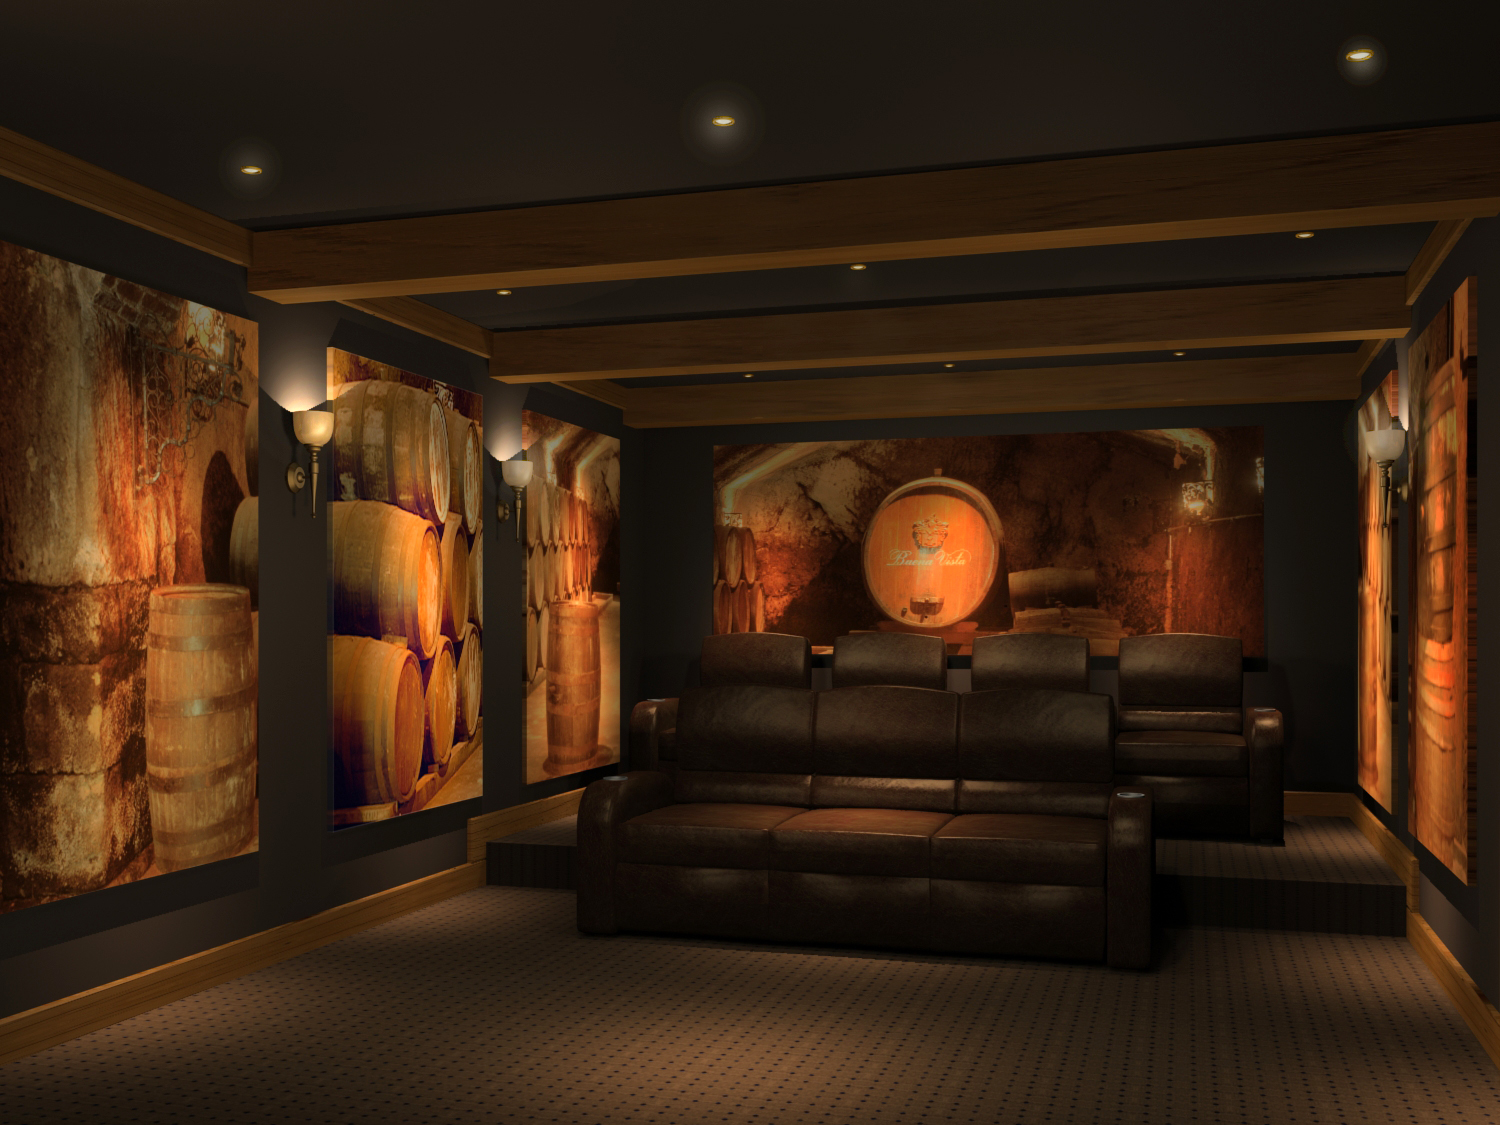 Home Theater Design And Beyond By 3 D Squared Inc Home Theater Design Wine Cellar Theme